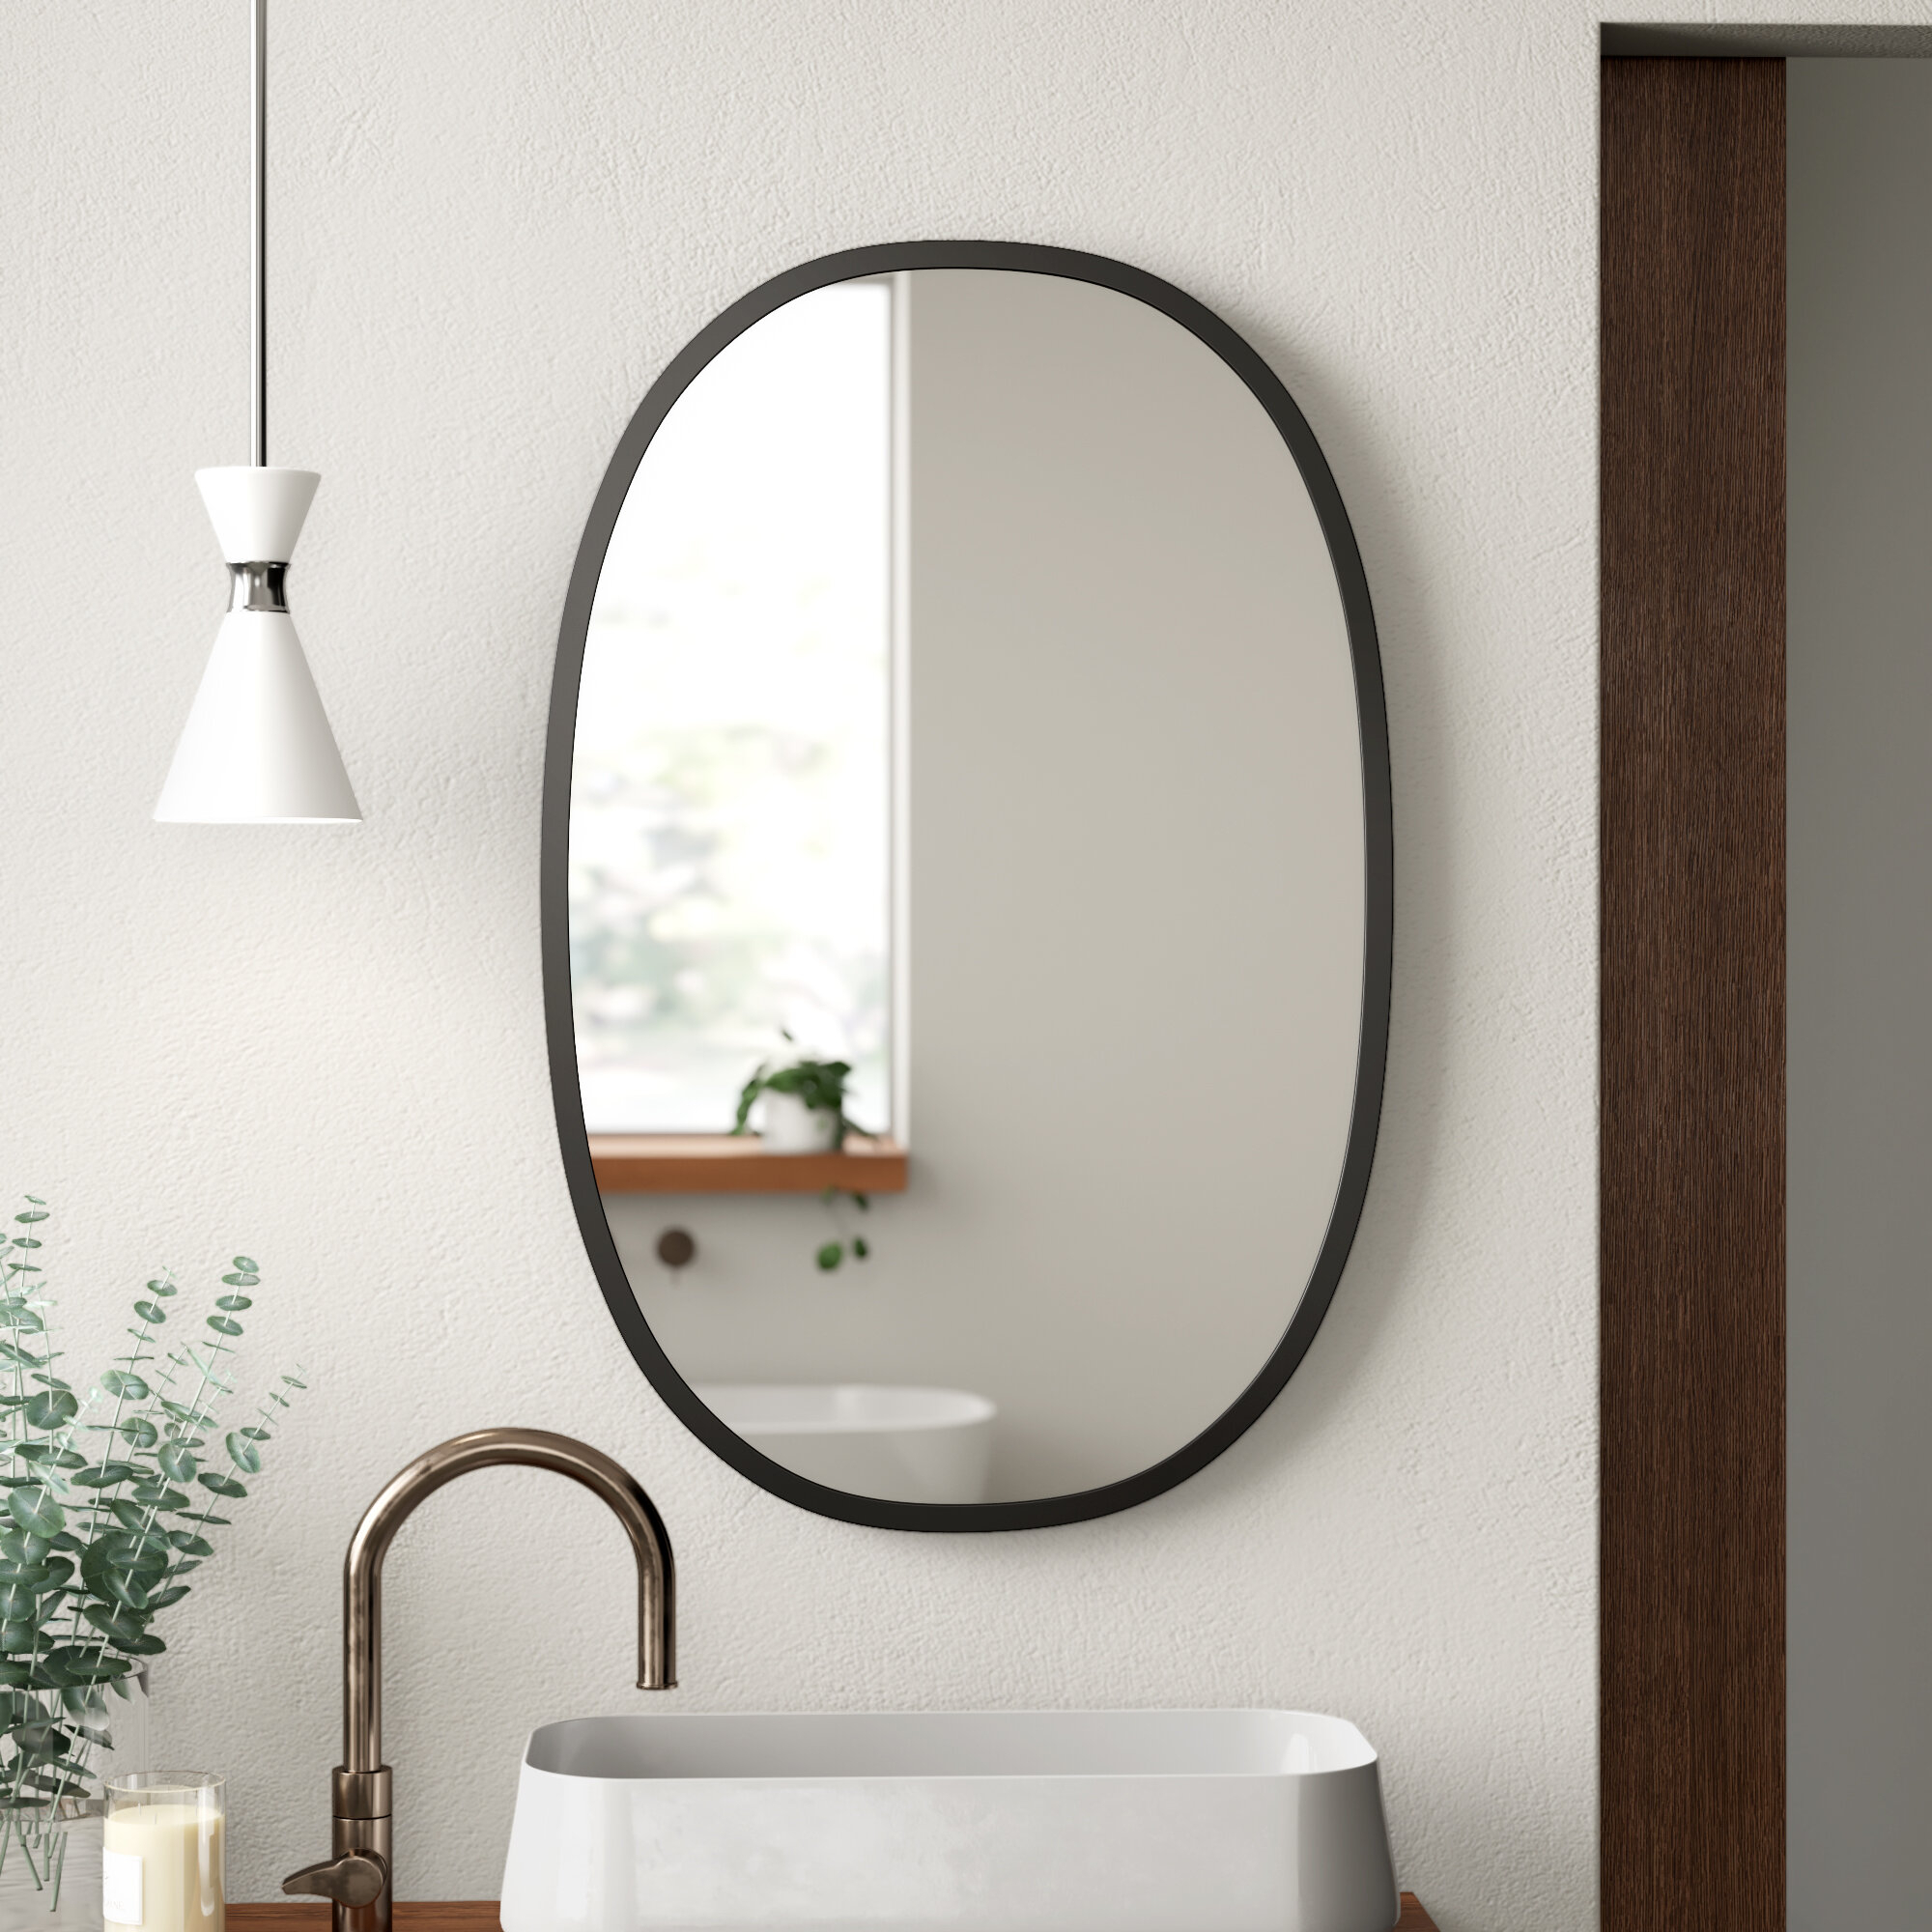 Hub Modern & Contemporary Accent Mirror Intended For Hub Modern And Contemporary Accent Mirrors (Photo 9 of 20)